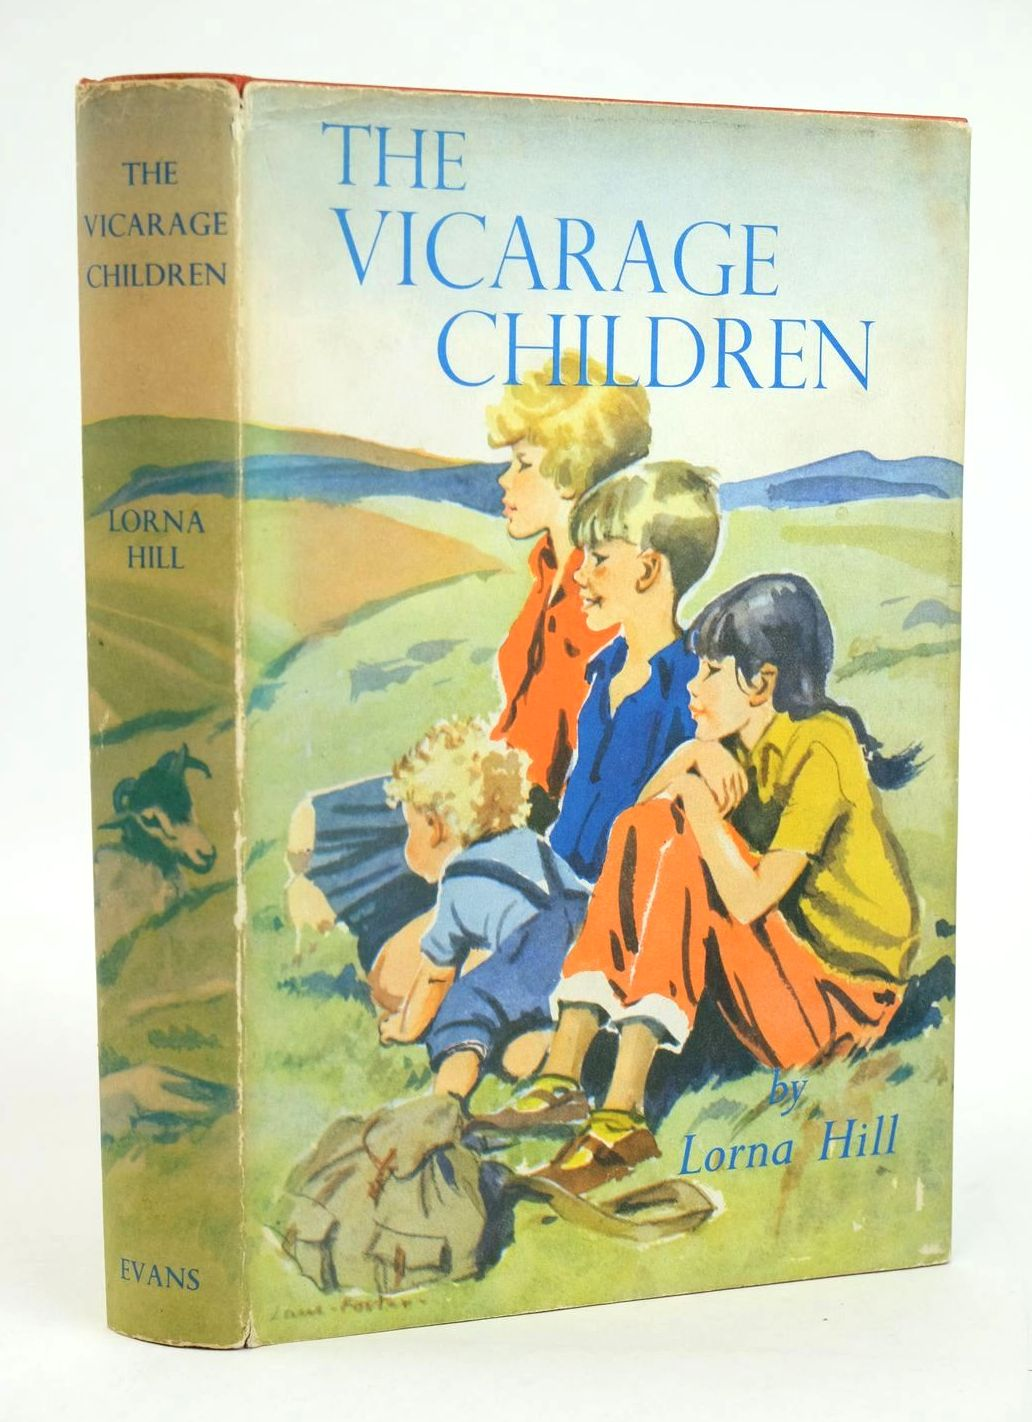 Photo of THE VICARAGE CHILDREN written by Hill, Lorna illustrated by Foster, Marcia Lane published by Evans Brothers Limited (STOCK CODE: 1319356)  for sale by Stella & Rose's Books